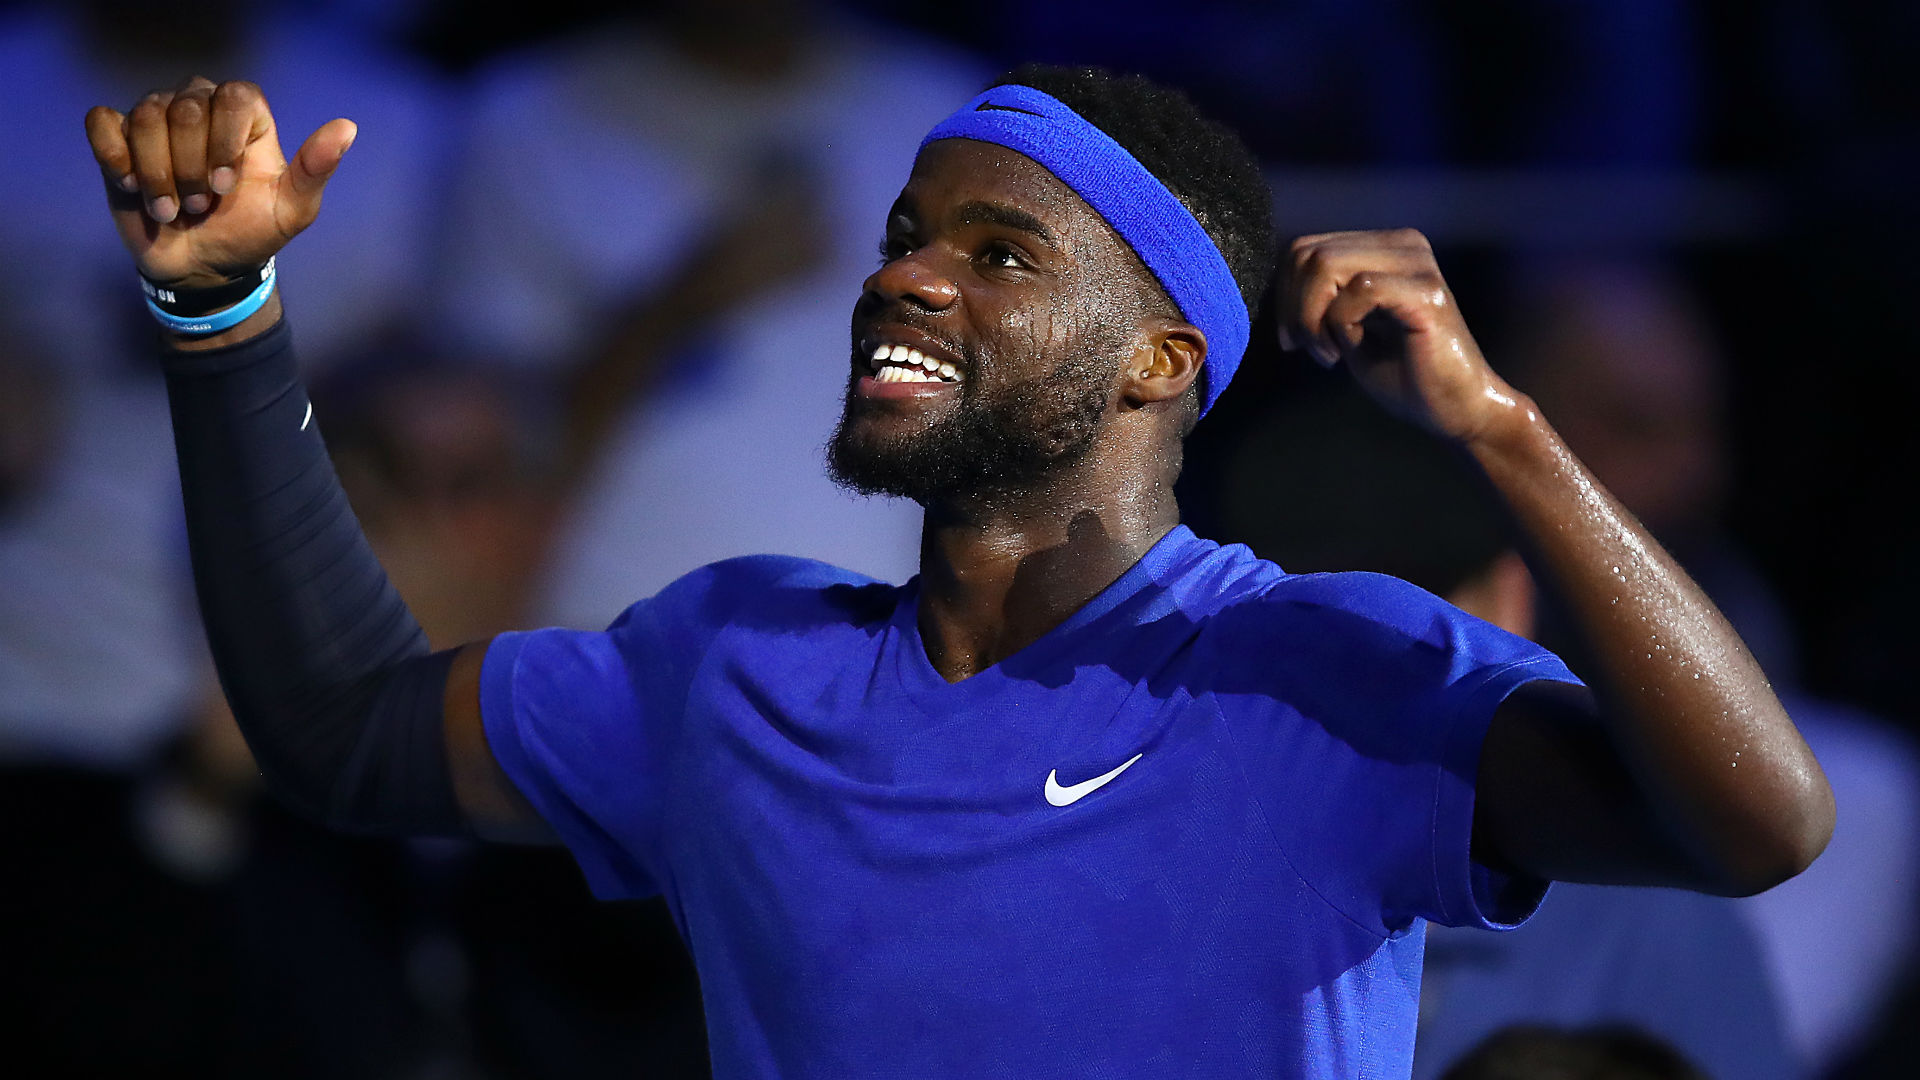 The top two seeds will meet in the semi-finals in Milan, with Frances Tiafoe doing battle with Alex de Minaur.